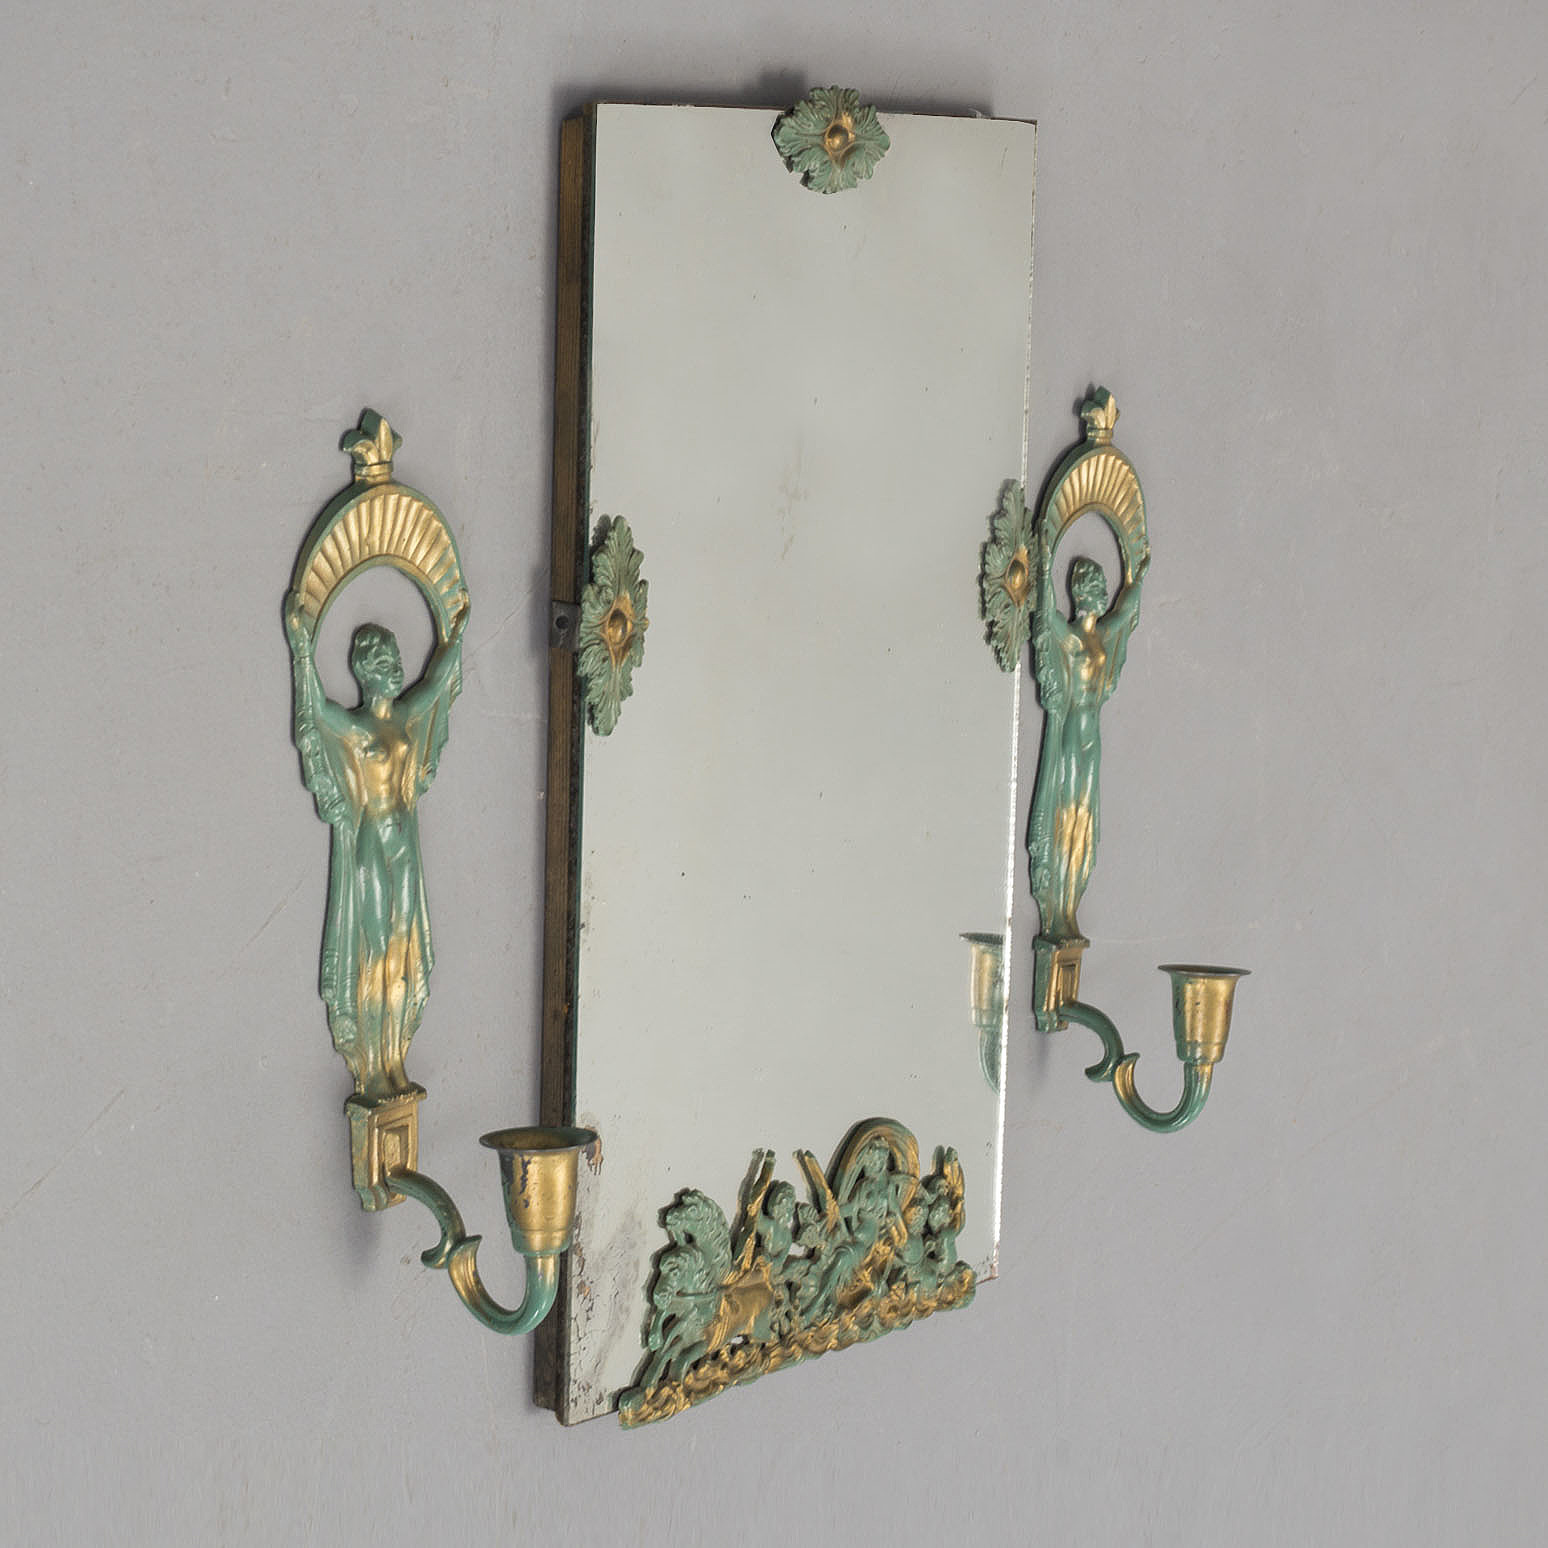 A Pair Of 1930s Wall Sconces And A Mirror Bukowskis